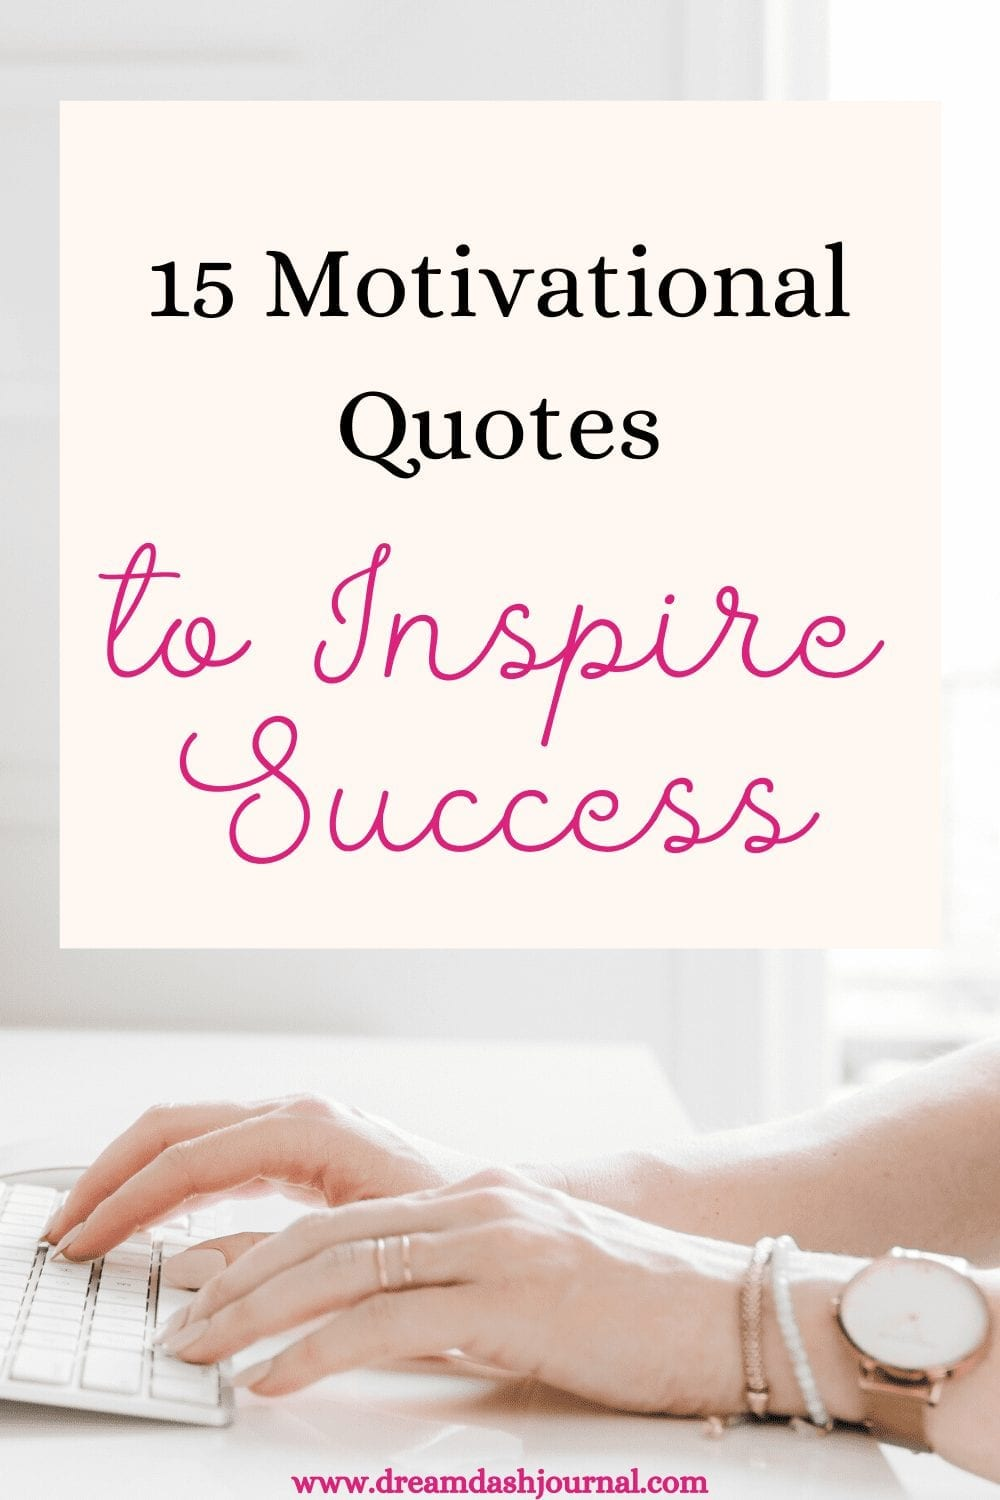 15 Motivational Quotes for Success and Happiness